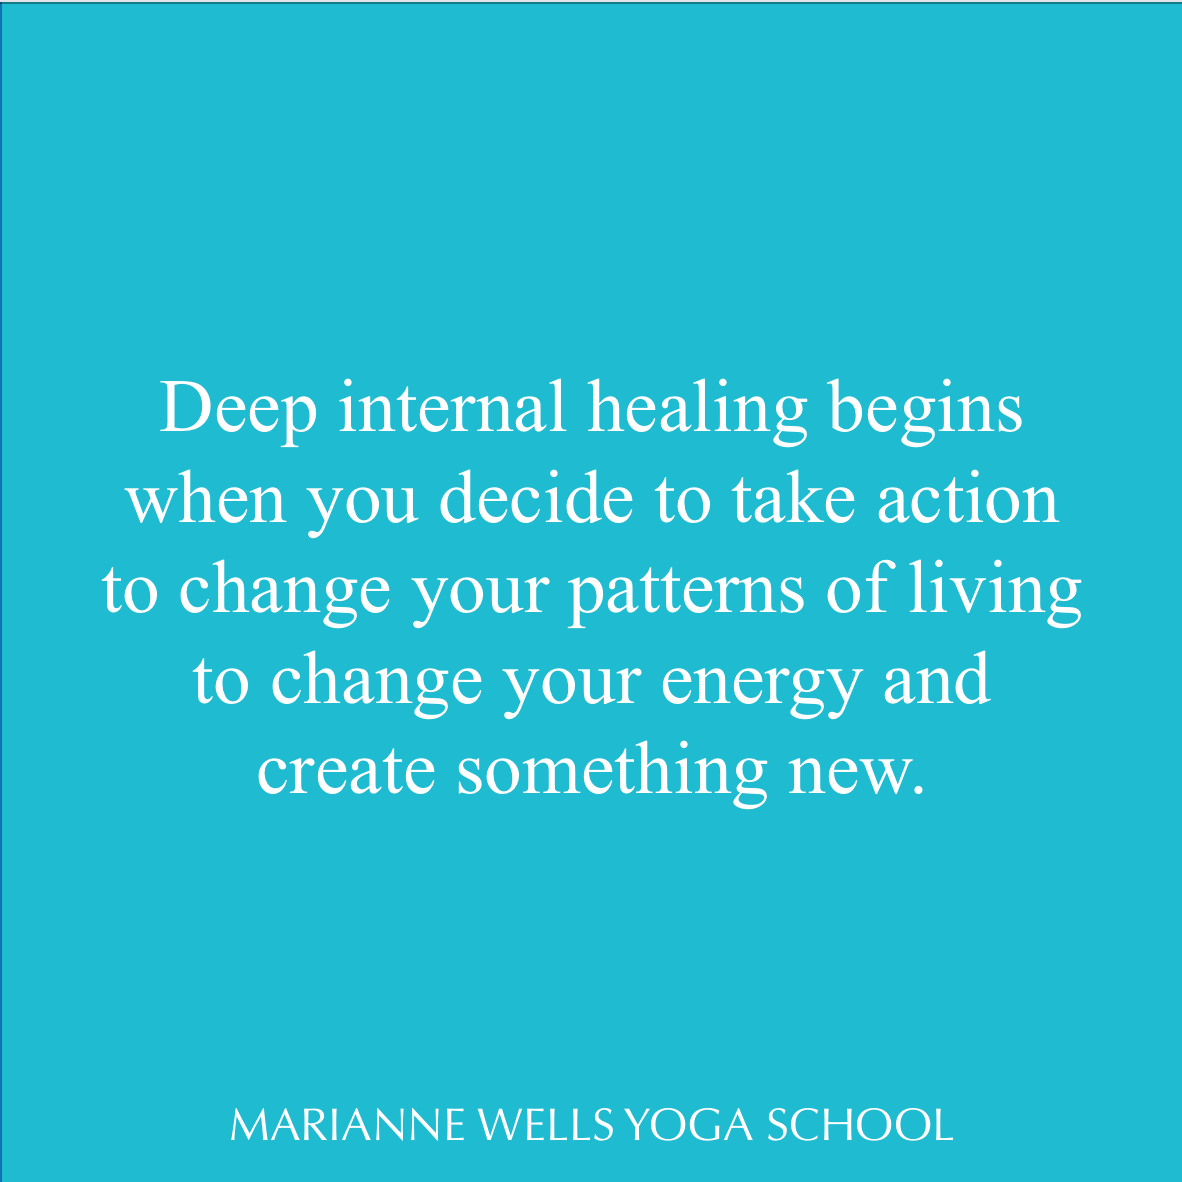 Marianne Wellsyoga Retreat True North Health Center